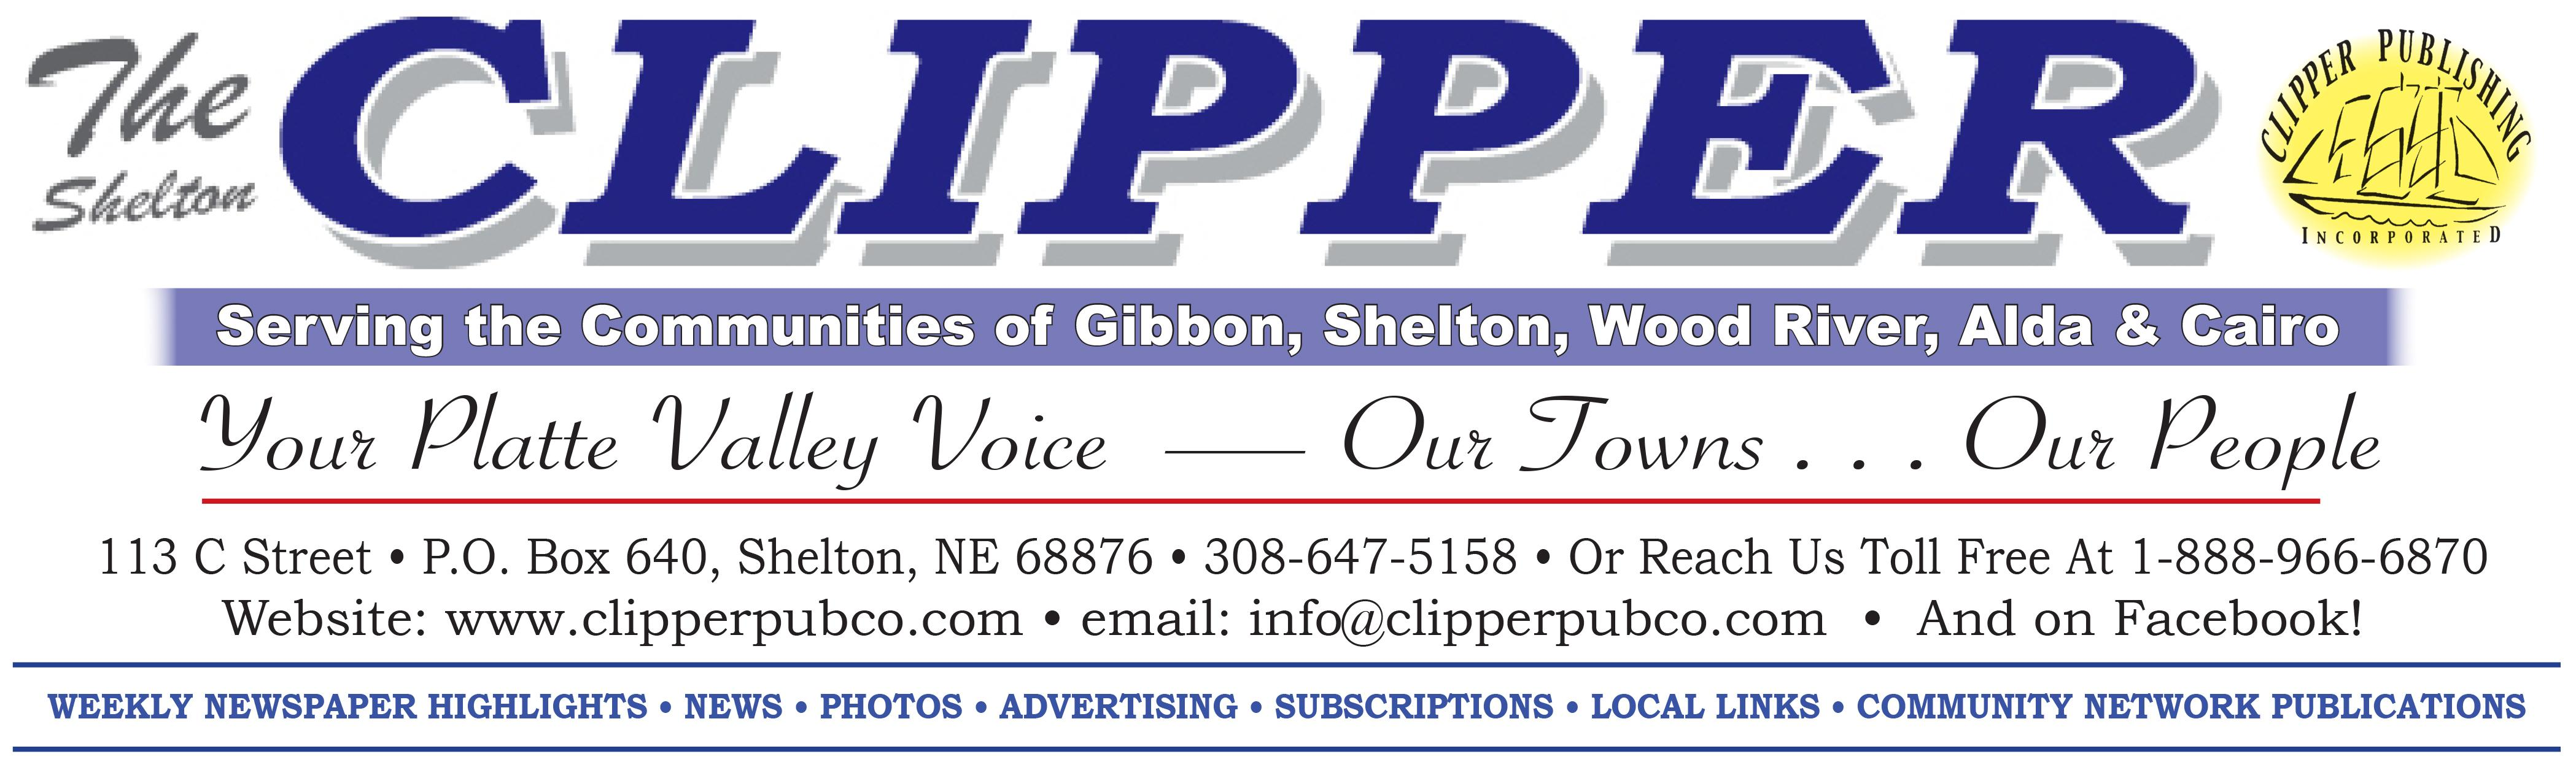 The Shelton Clipper Logo